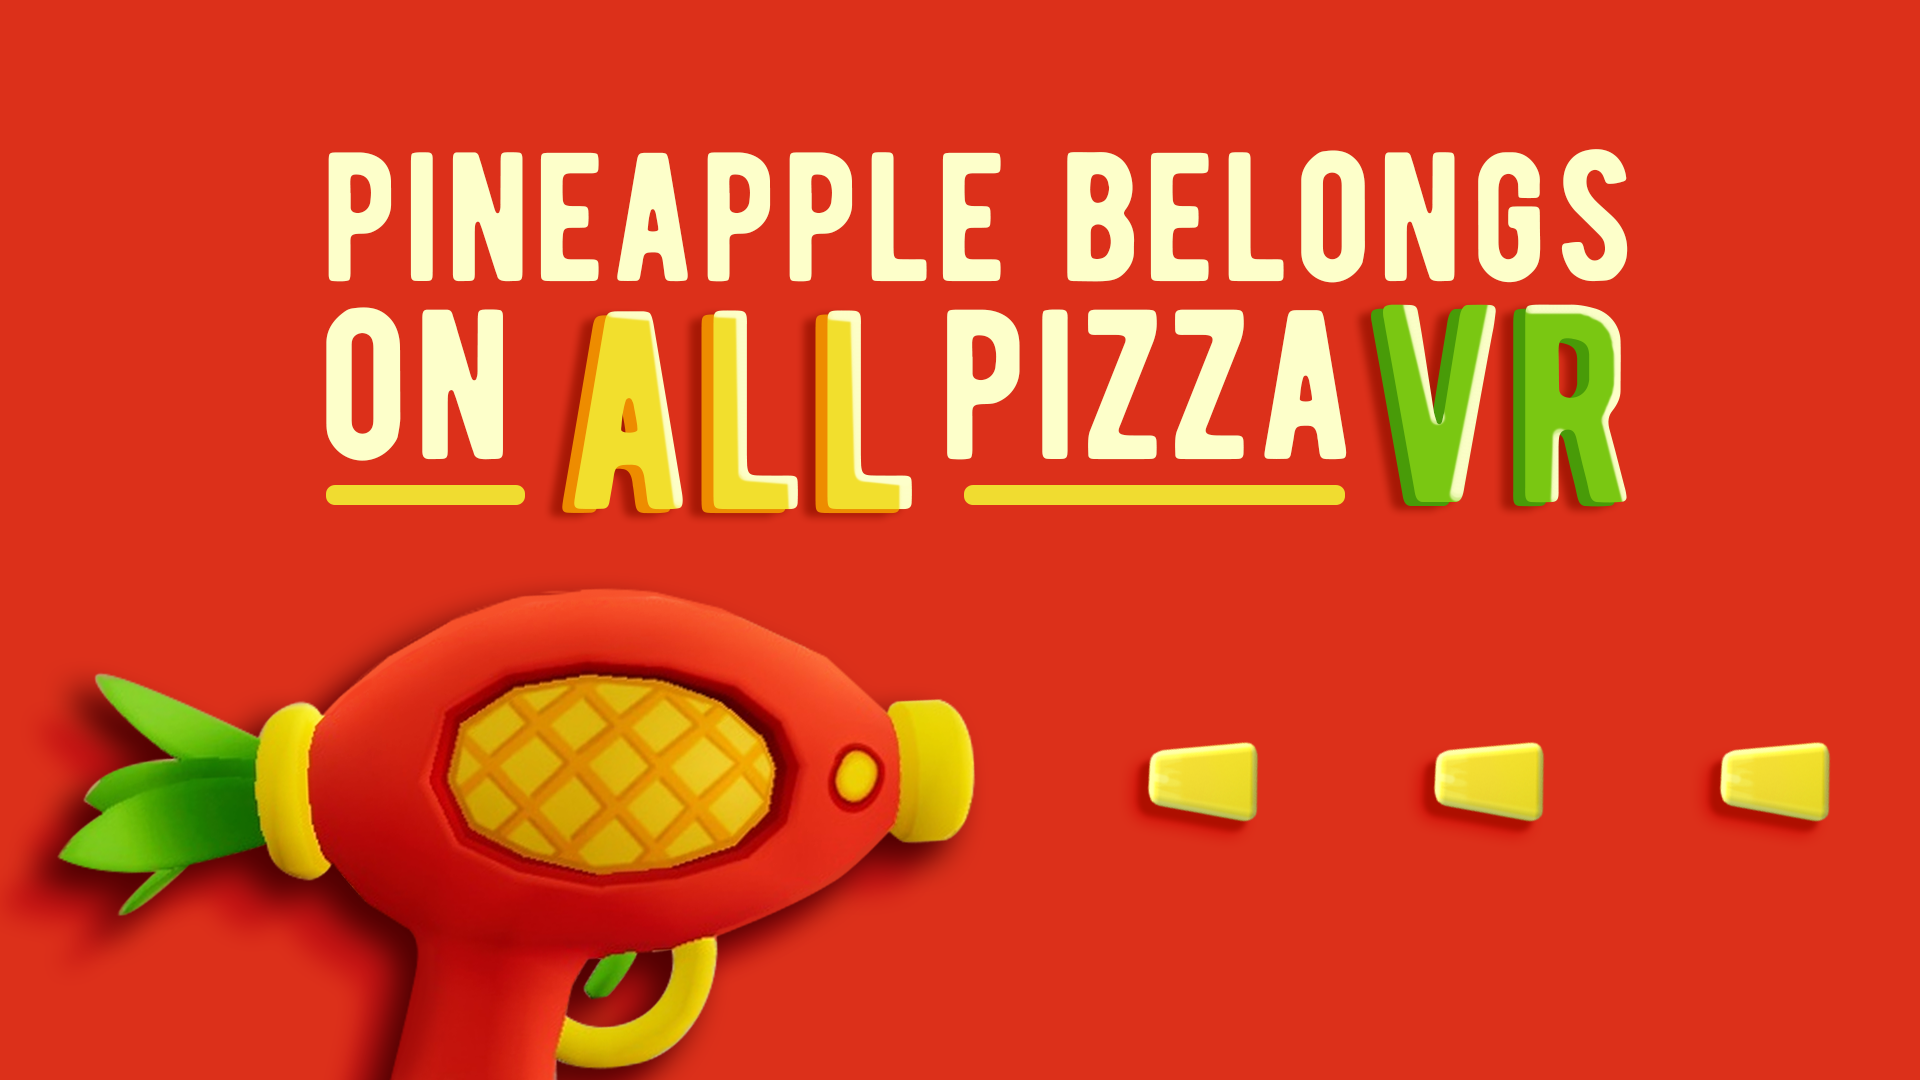 Pineapple belongs on ALL pizza VR